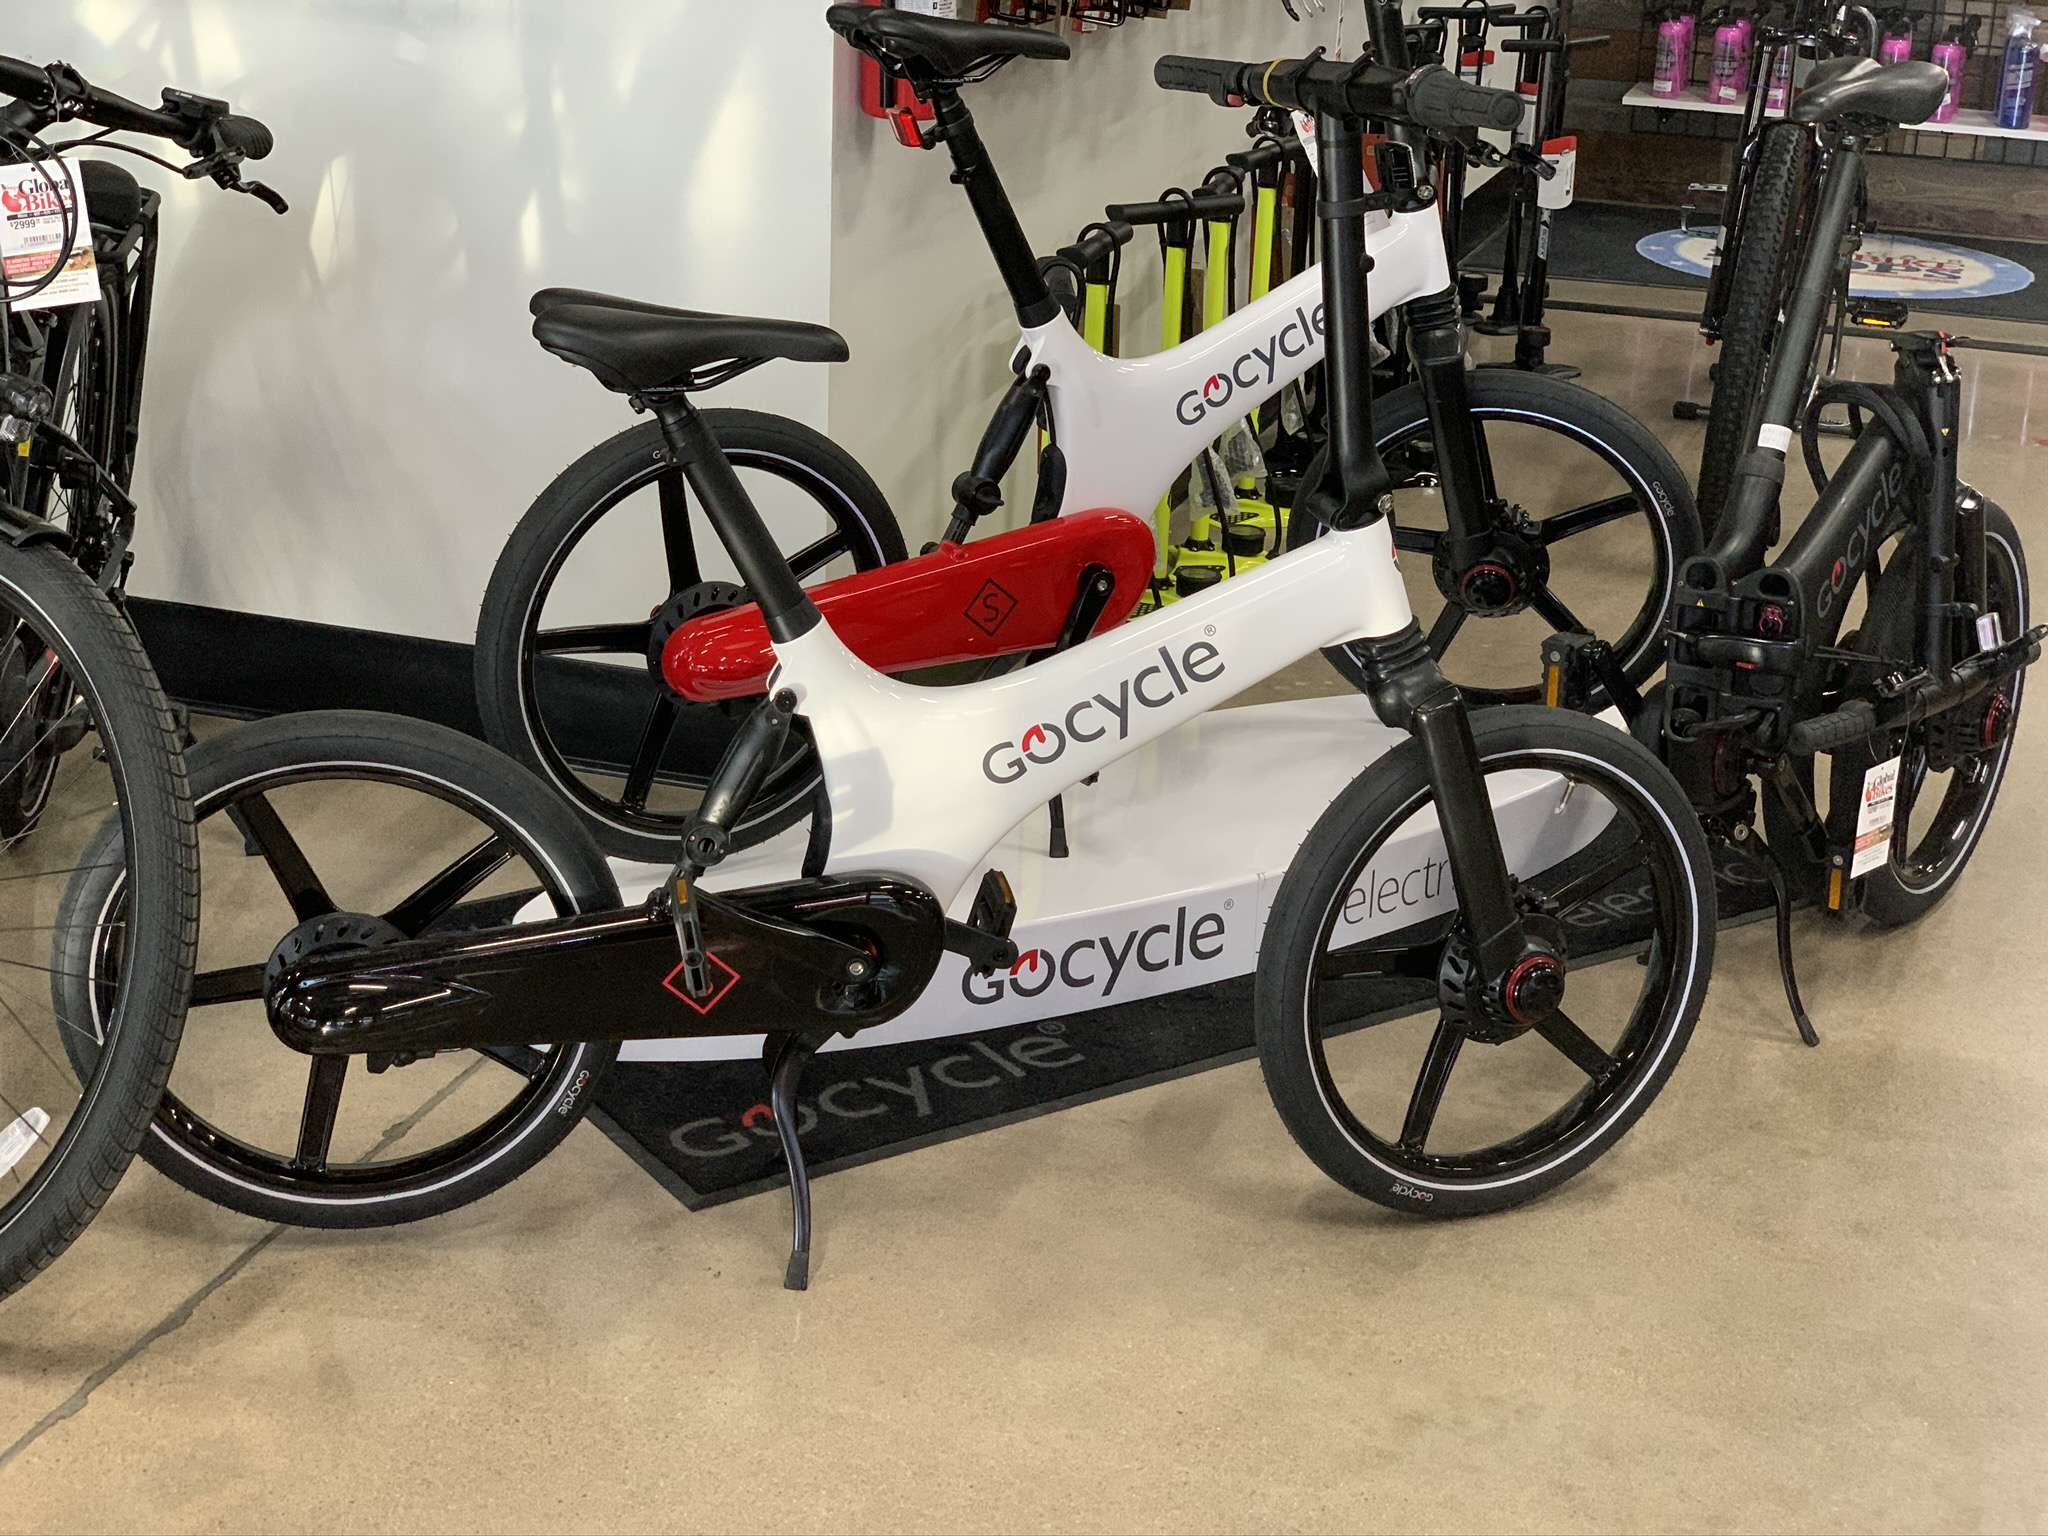 Gocycle dealer near me